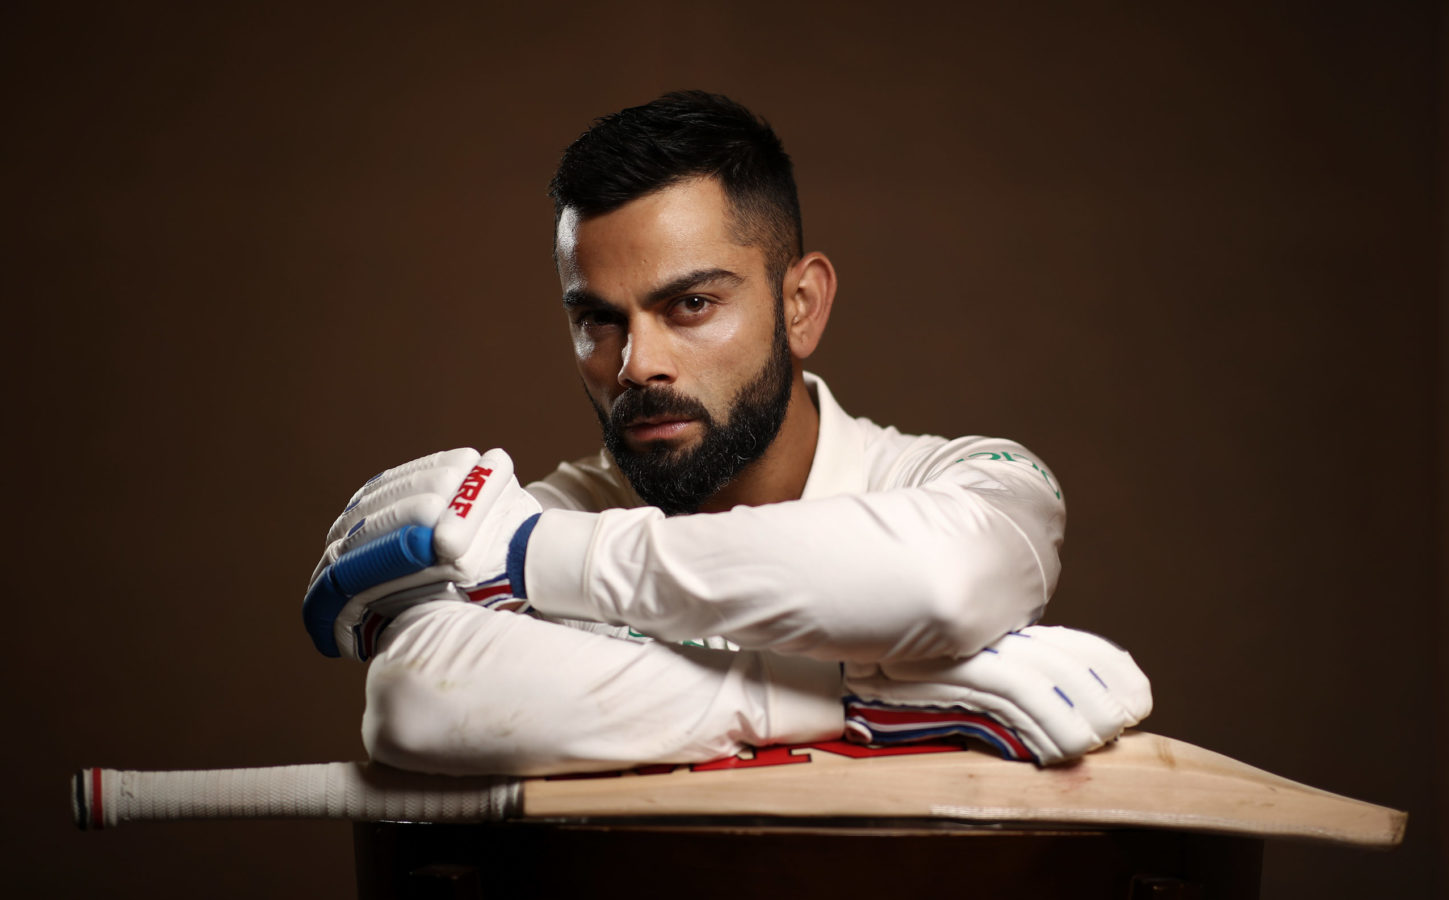 An expert dissects Virat Kohli's grooming game and tell us how to ace it